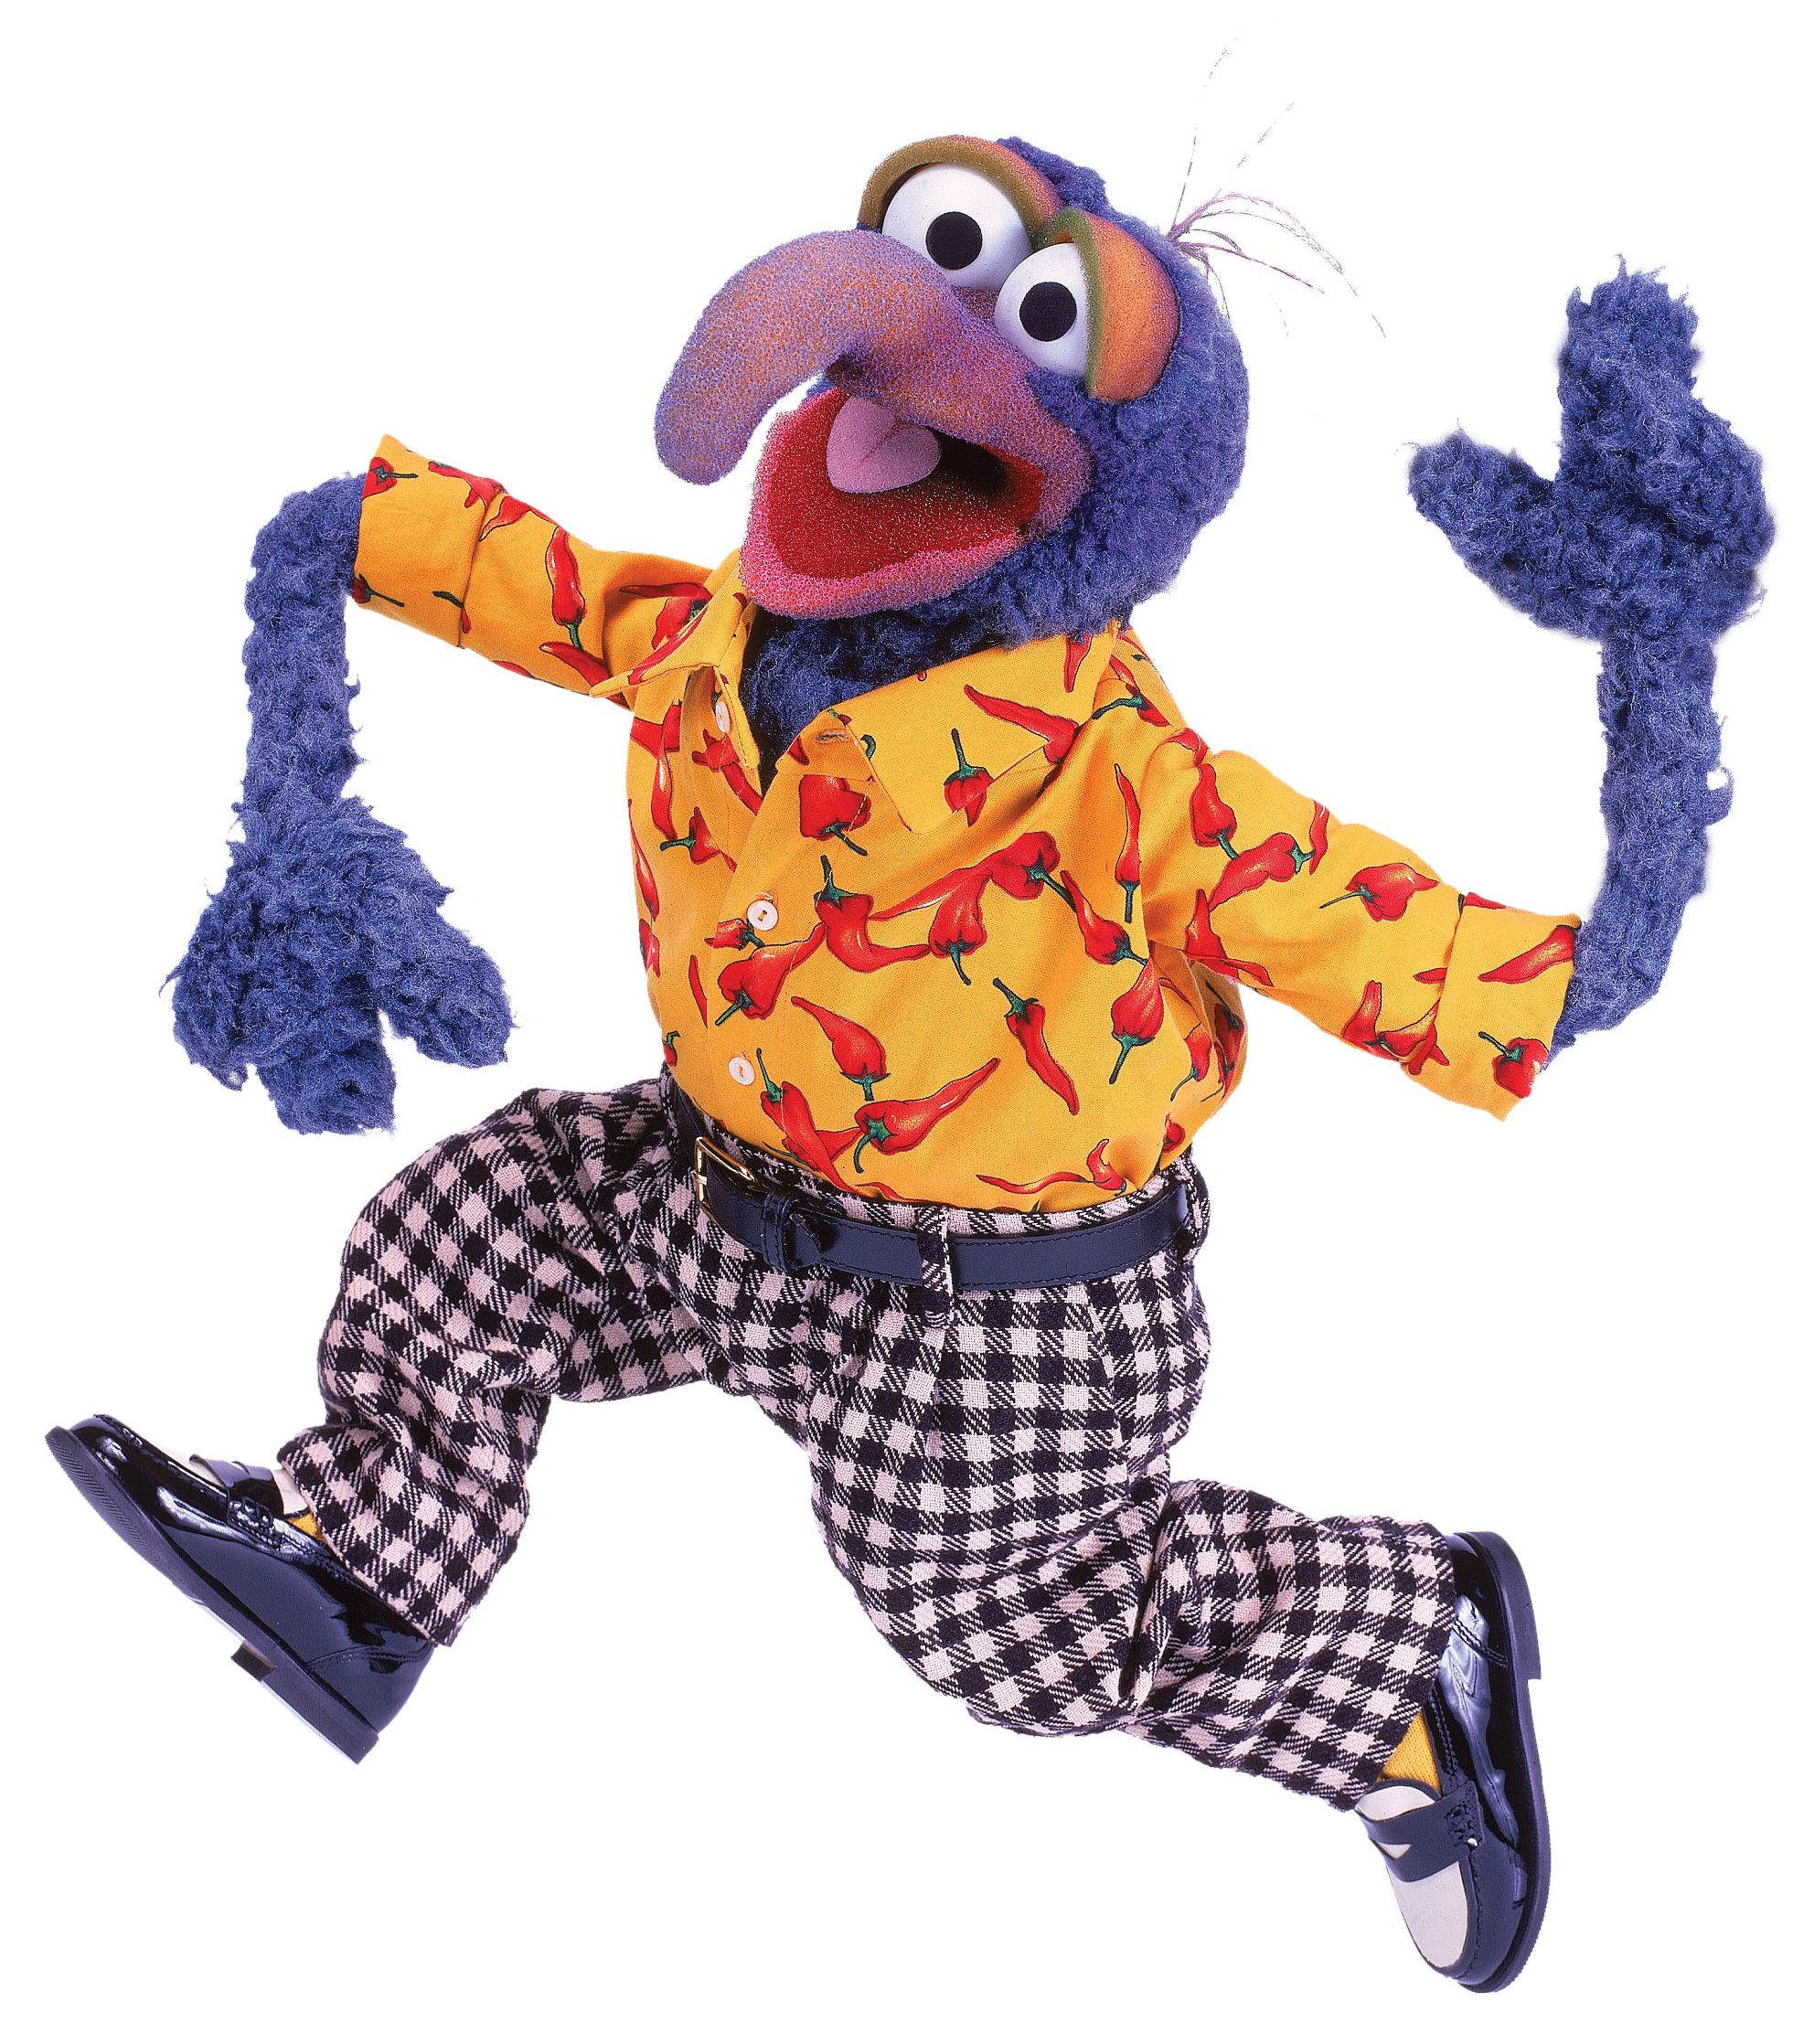 Gonzo Yes Muppets The Muppets Characters The Muppet Show